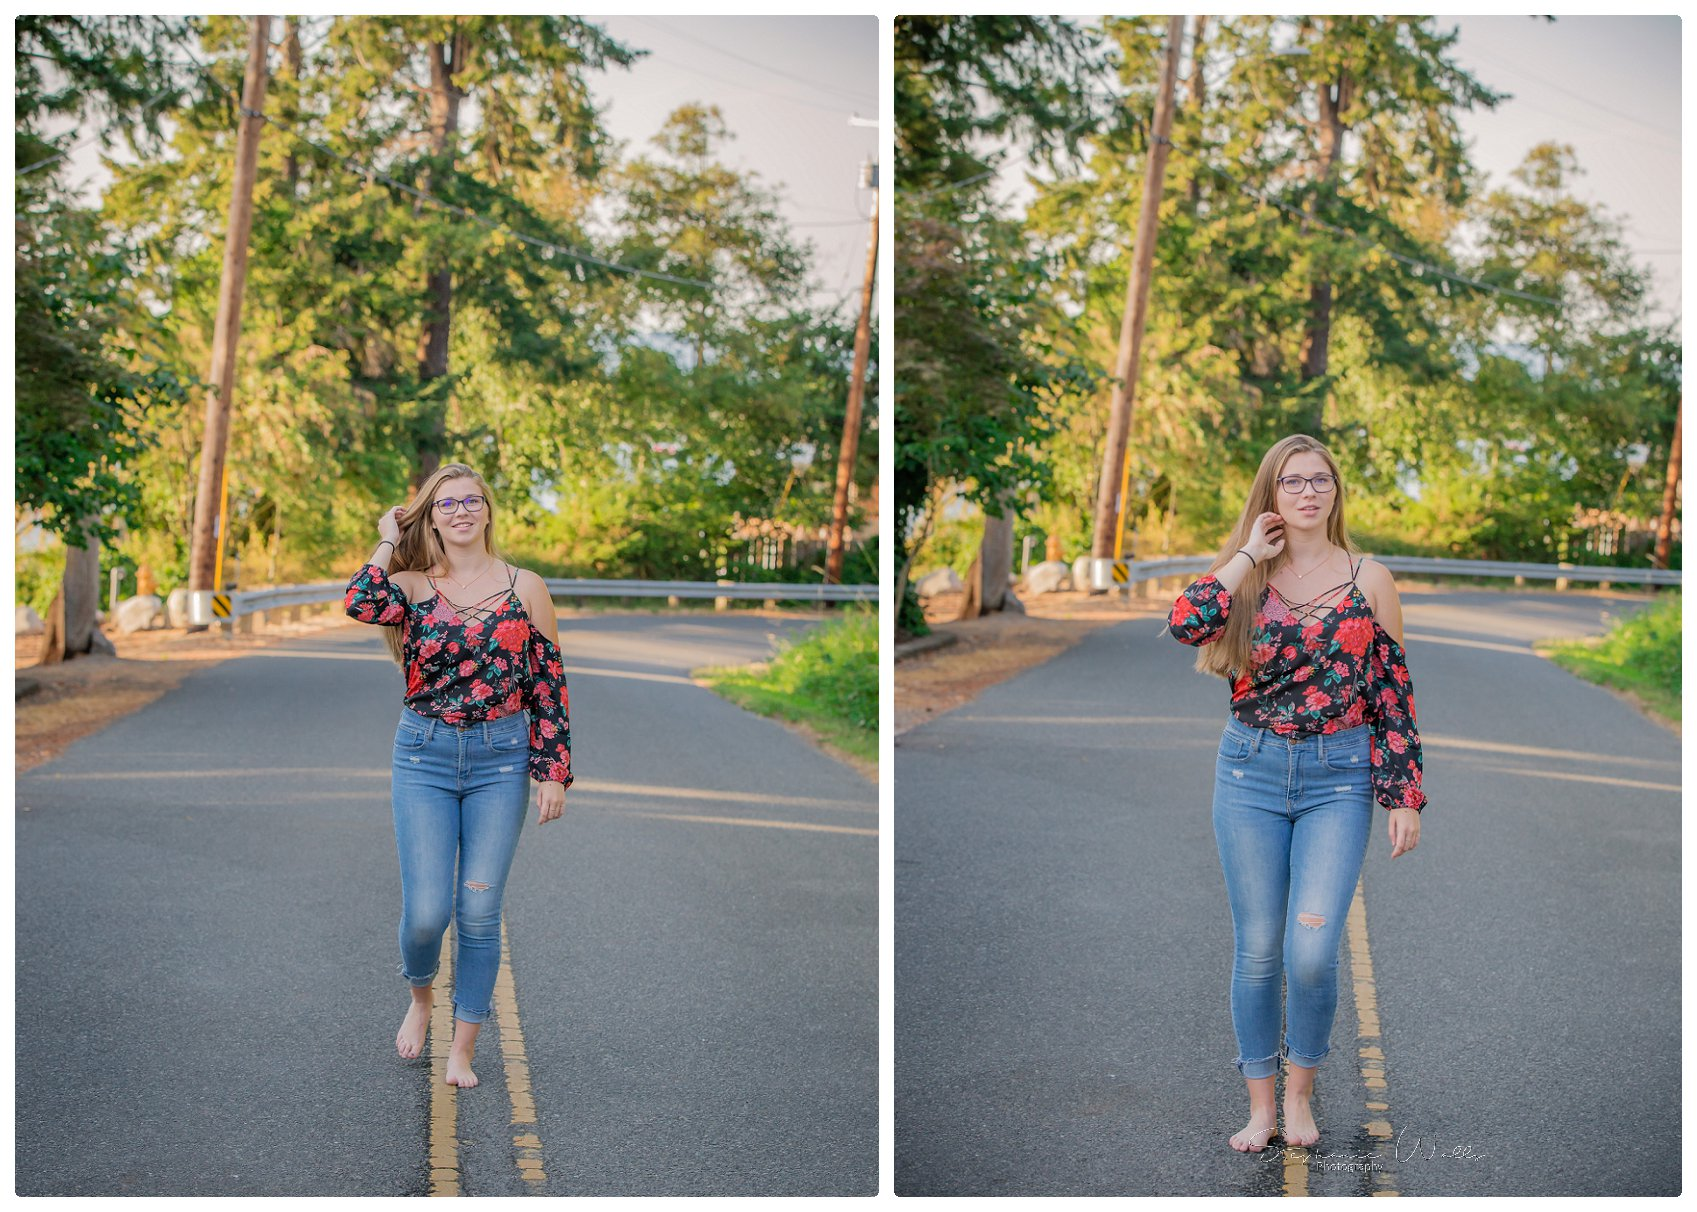 Samantha Co2019 001 Samantha Co2019 | Warm Beach, Stanwood | Lake Stevens High School Senior Photographer